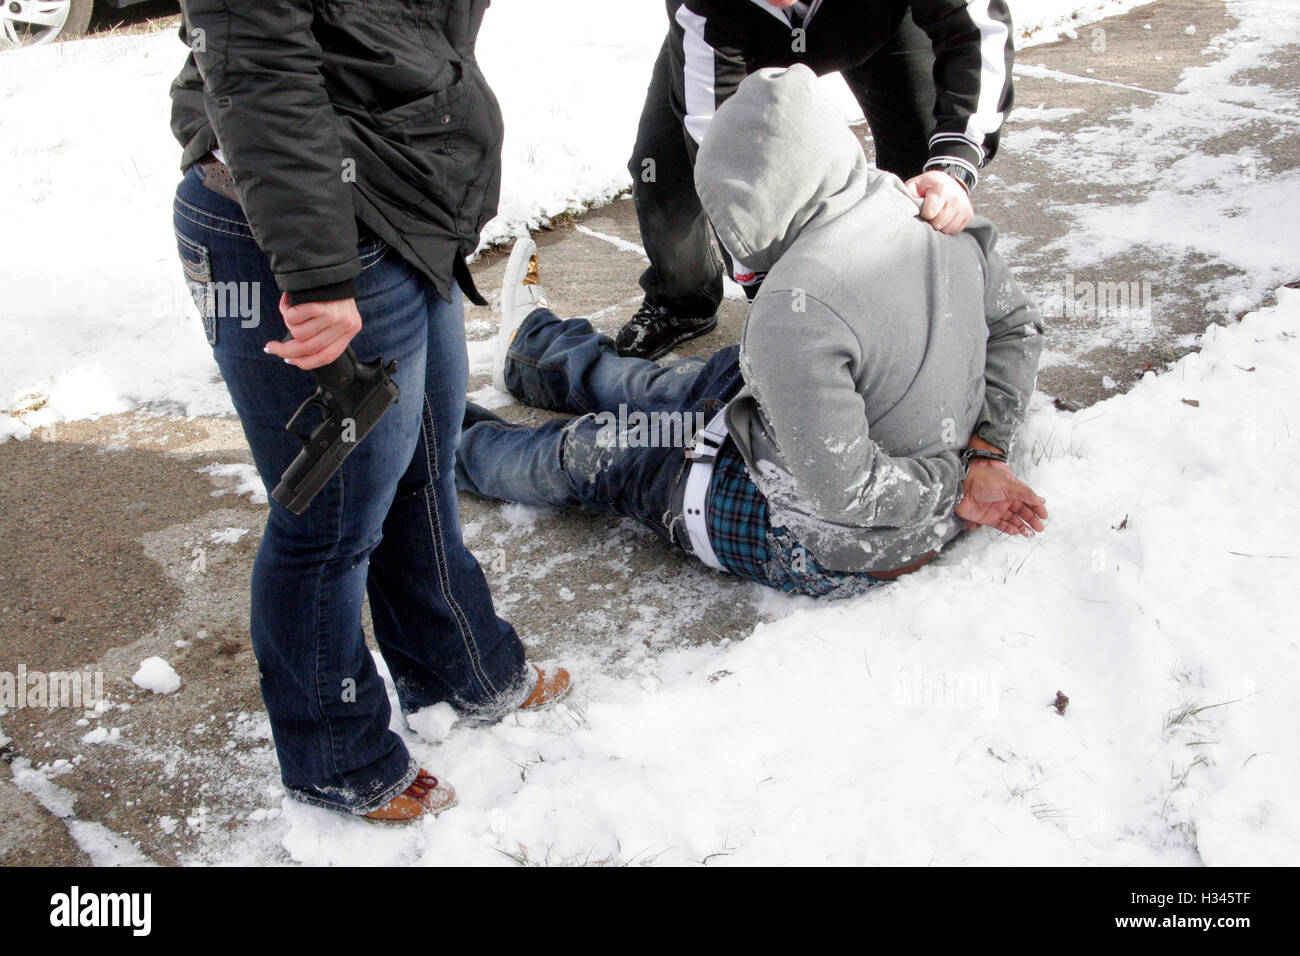 Detroit police detectives arrests a man found in possession of a handgun, Detroit, Michigan, USA - Stock Image